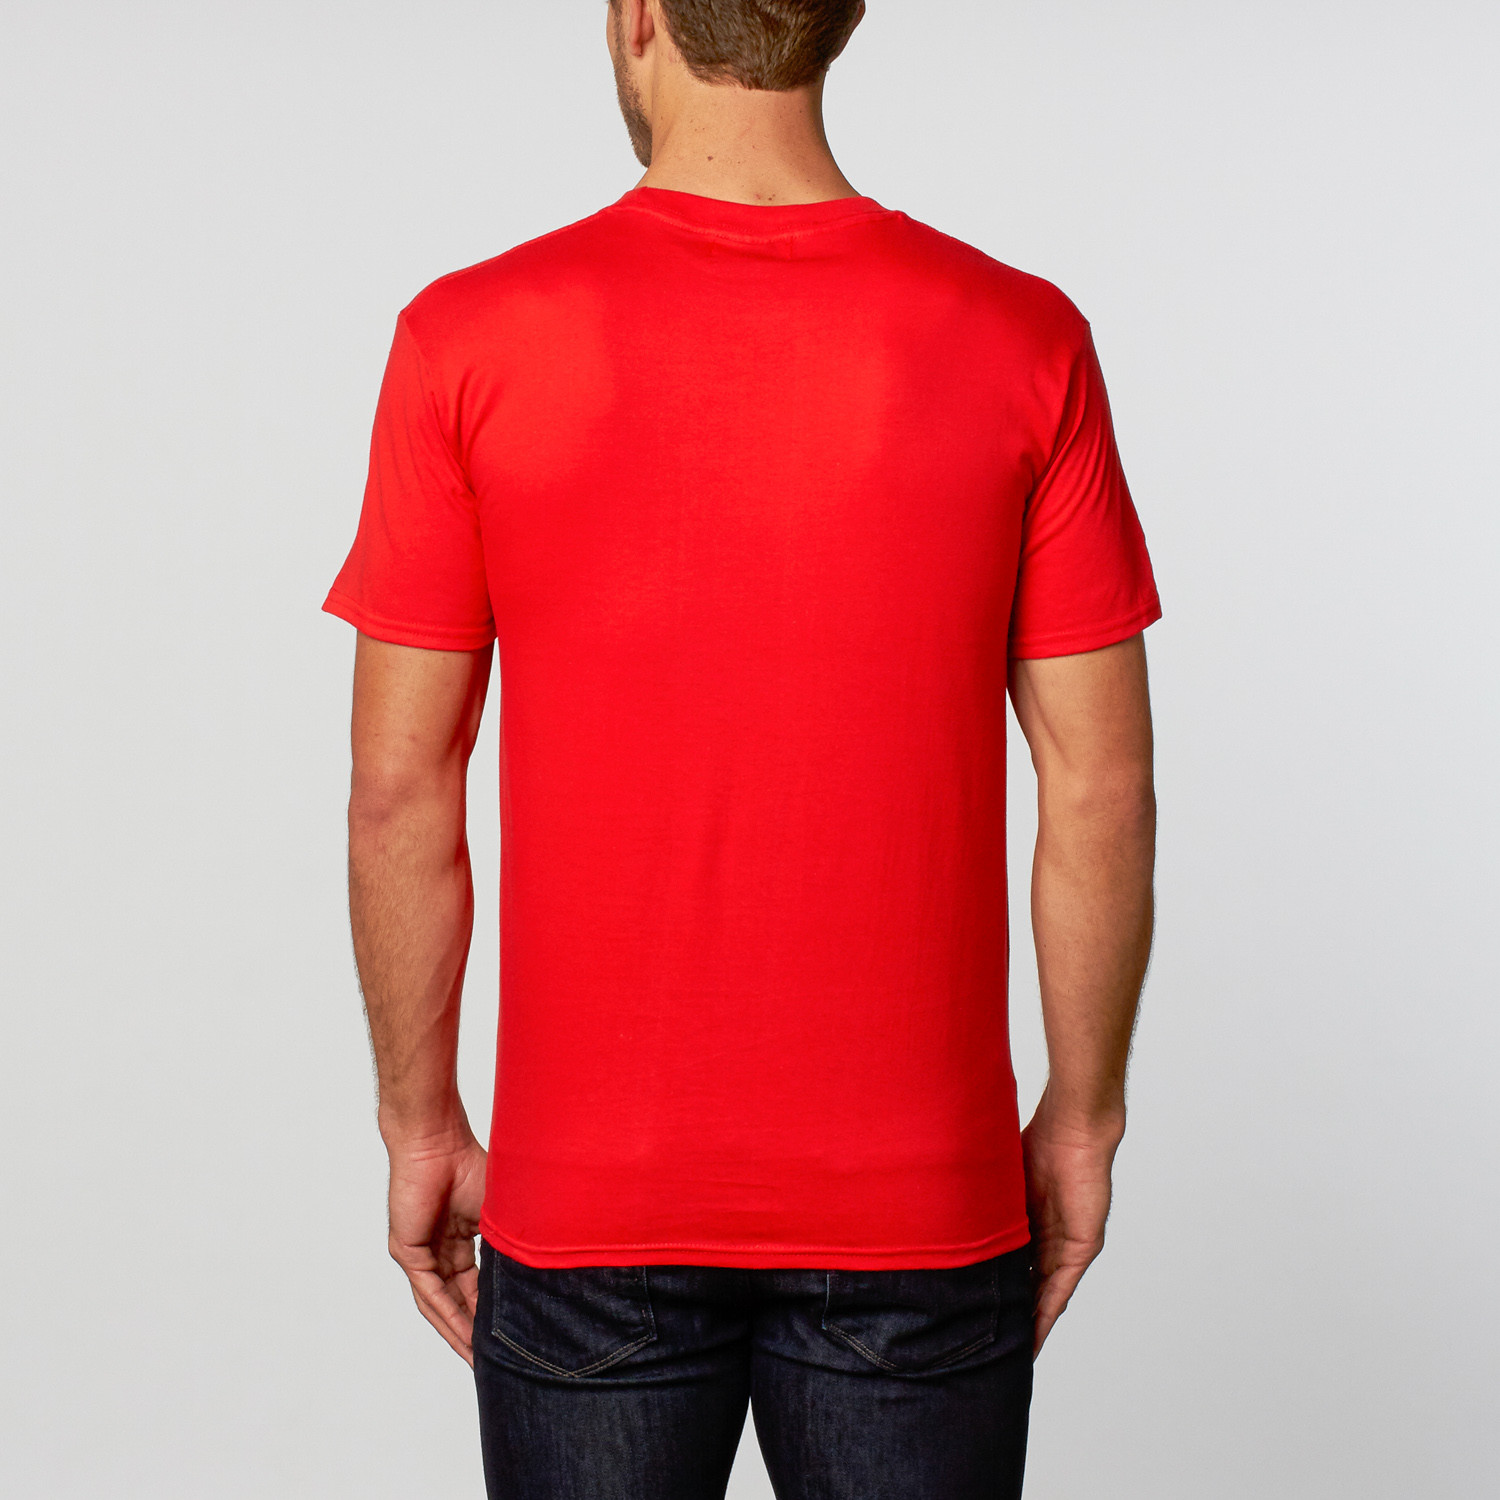 Shop men's Short Crewneck t-shirts from a great selection of comfortable and quality t-shirts today! Free shipping with online orders over $60 Message Dialog This area is to show errors (if any) caused due to user input/ or system errors.